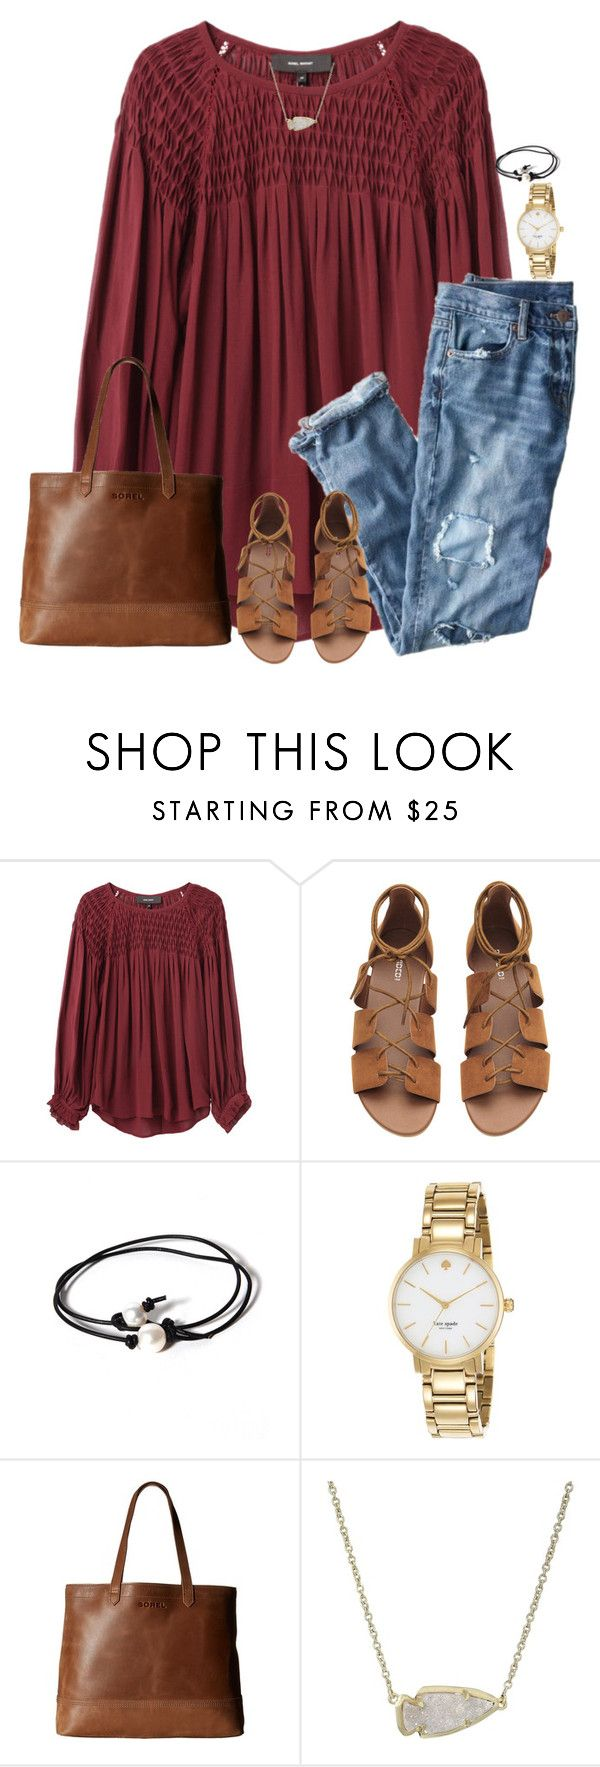 """""""Untitled #1704"""" by southernstruttin ❤ liked on Polyvore featuring Isabel Marant, J.Crew, Joie, Kate Spade, SOREL and Kendra Scott"""